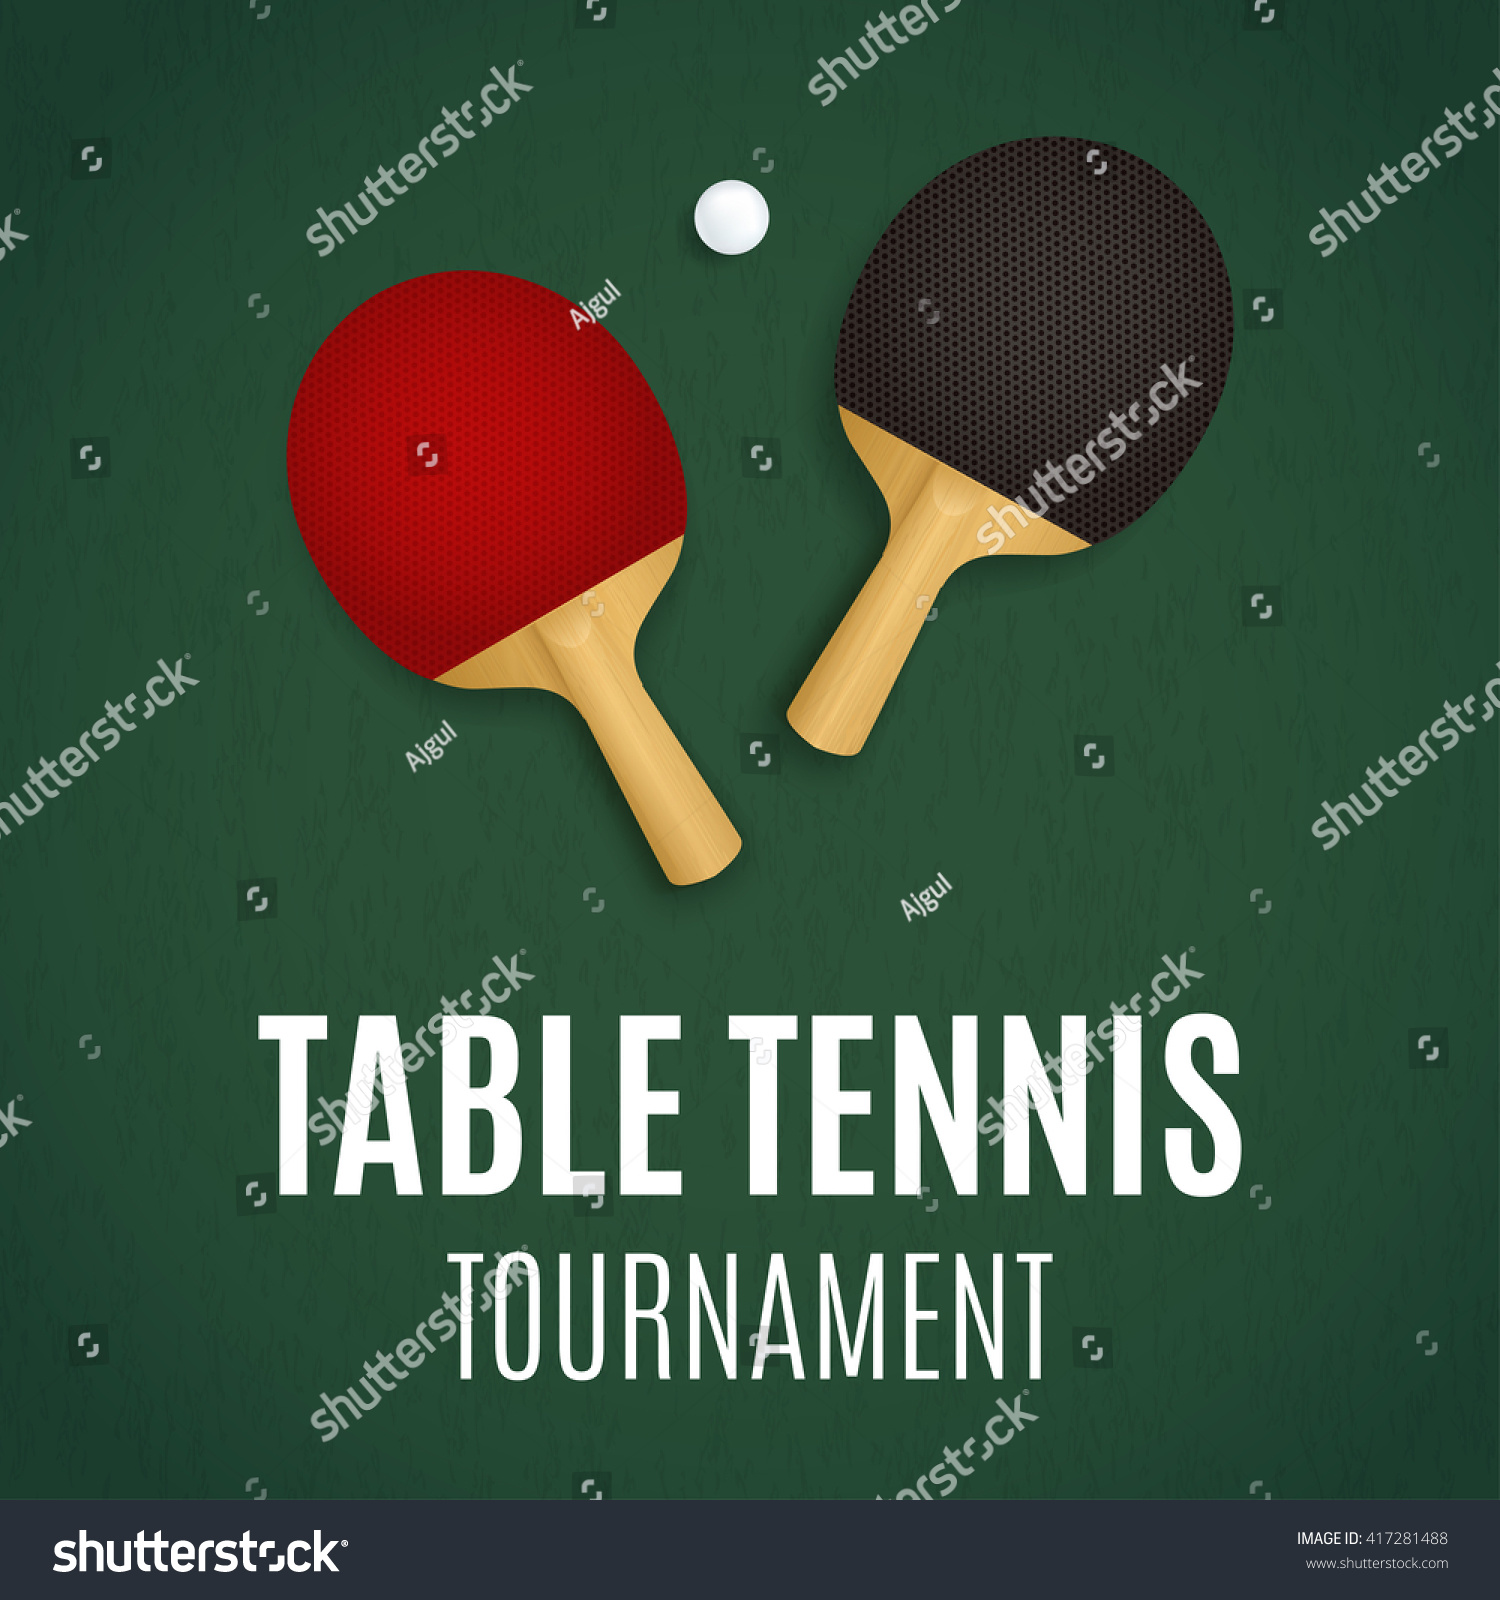 Table tennis tournament ping pong background stock vector table tennis tournament ping pong background stock vector 417281488 shutterstock fandeluxe Gallery